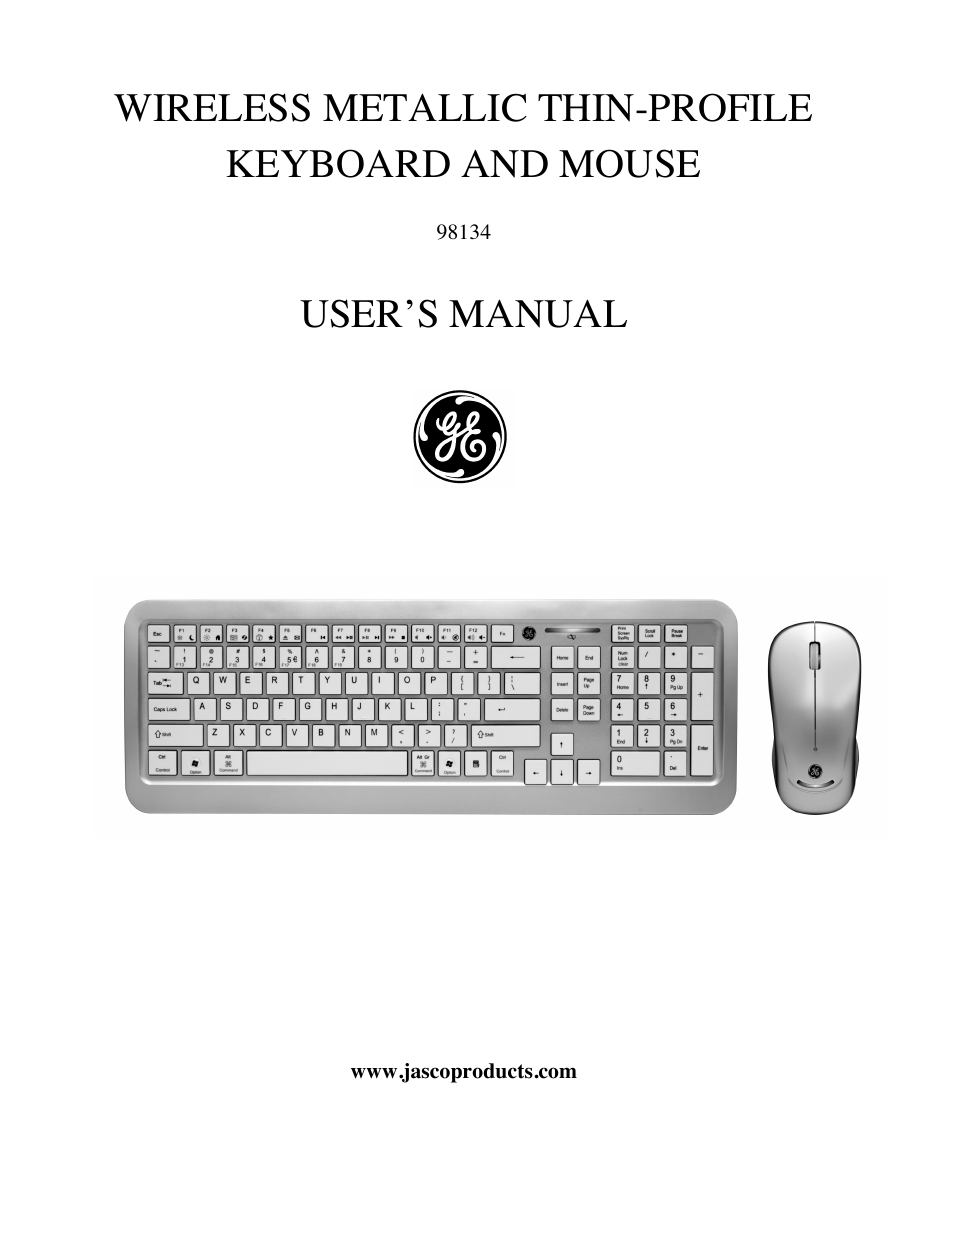 ge 98134 ge thin profile keyboard and mouse user manual 7 pages. Black Bedroom Furniture Sets. Home Design Ideas